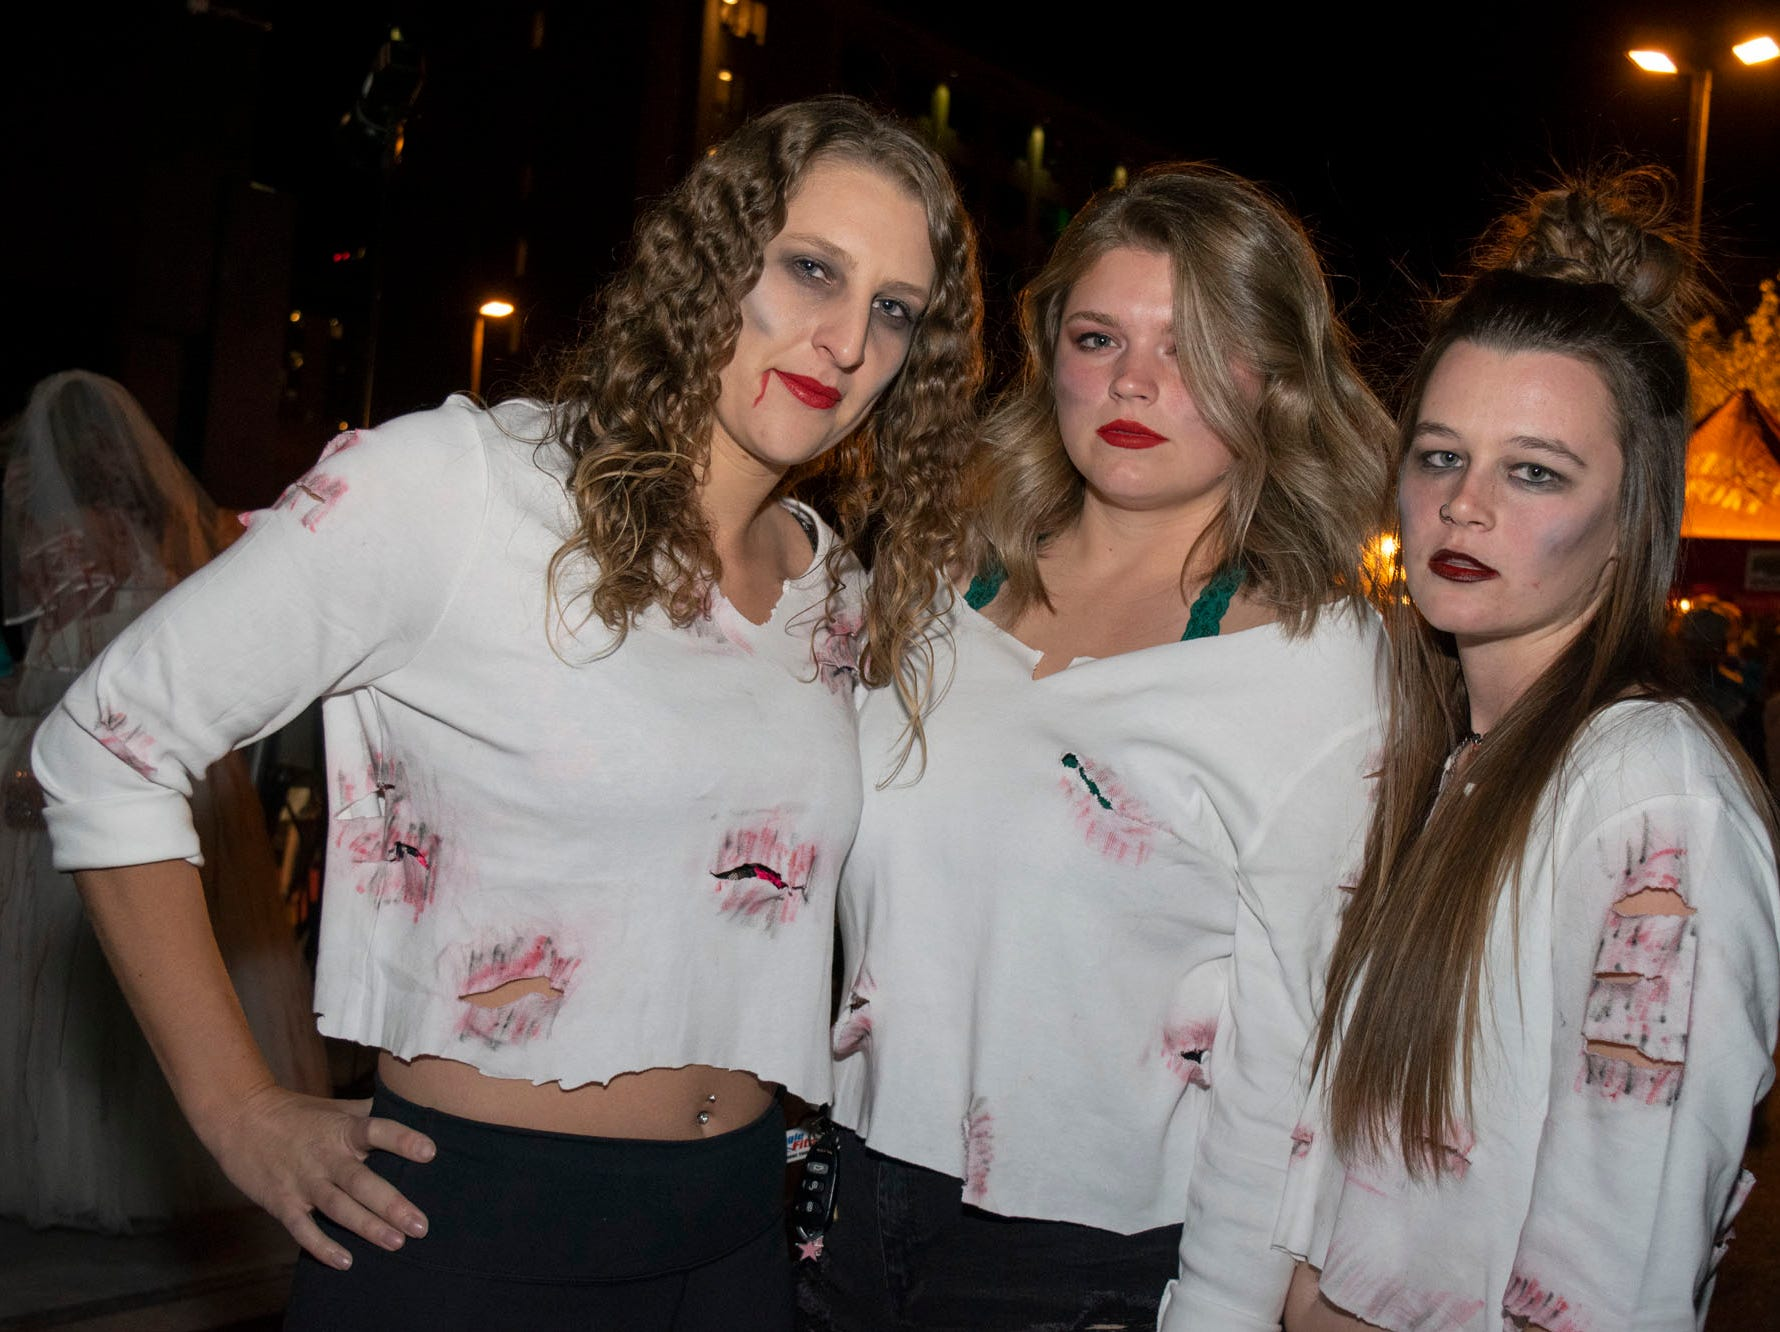 Rachel Collins, Sarah Dix, and Taylor Fagan attend the Zombie Crawl on Saturday, Oct. 20, 2018. Reno, Nev.